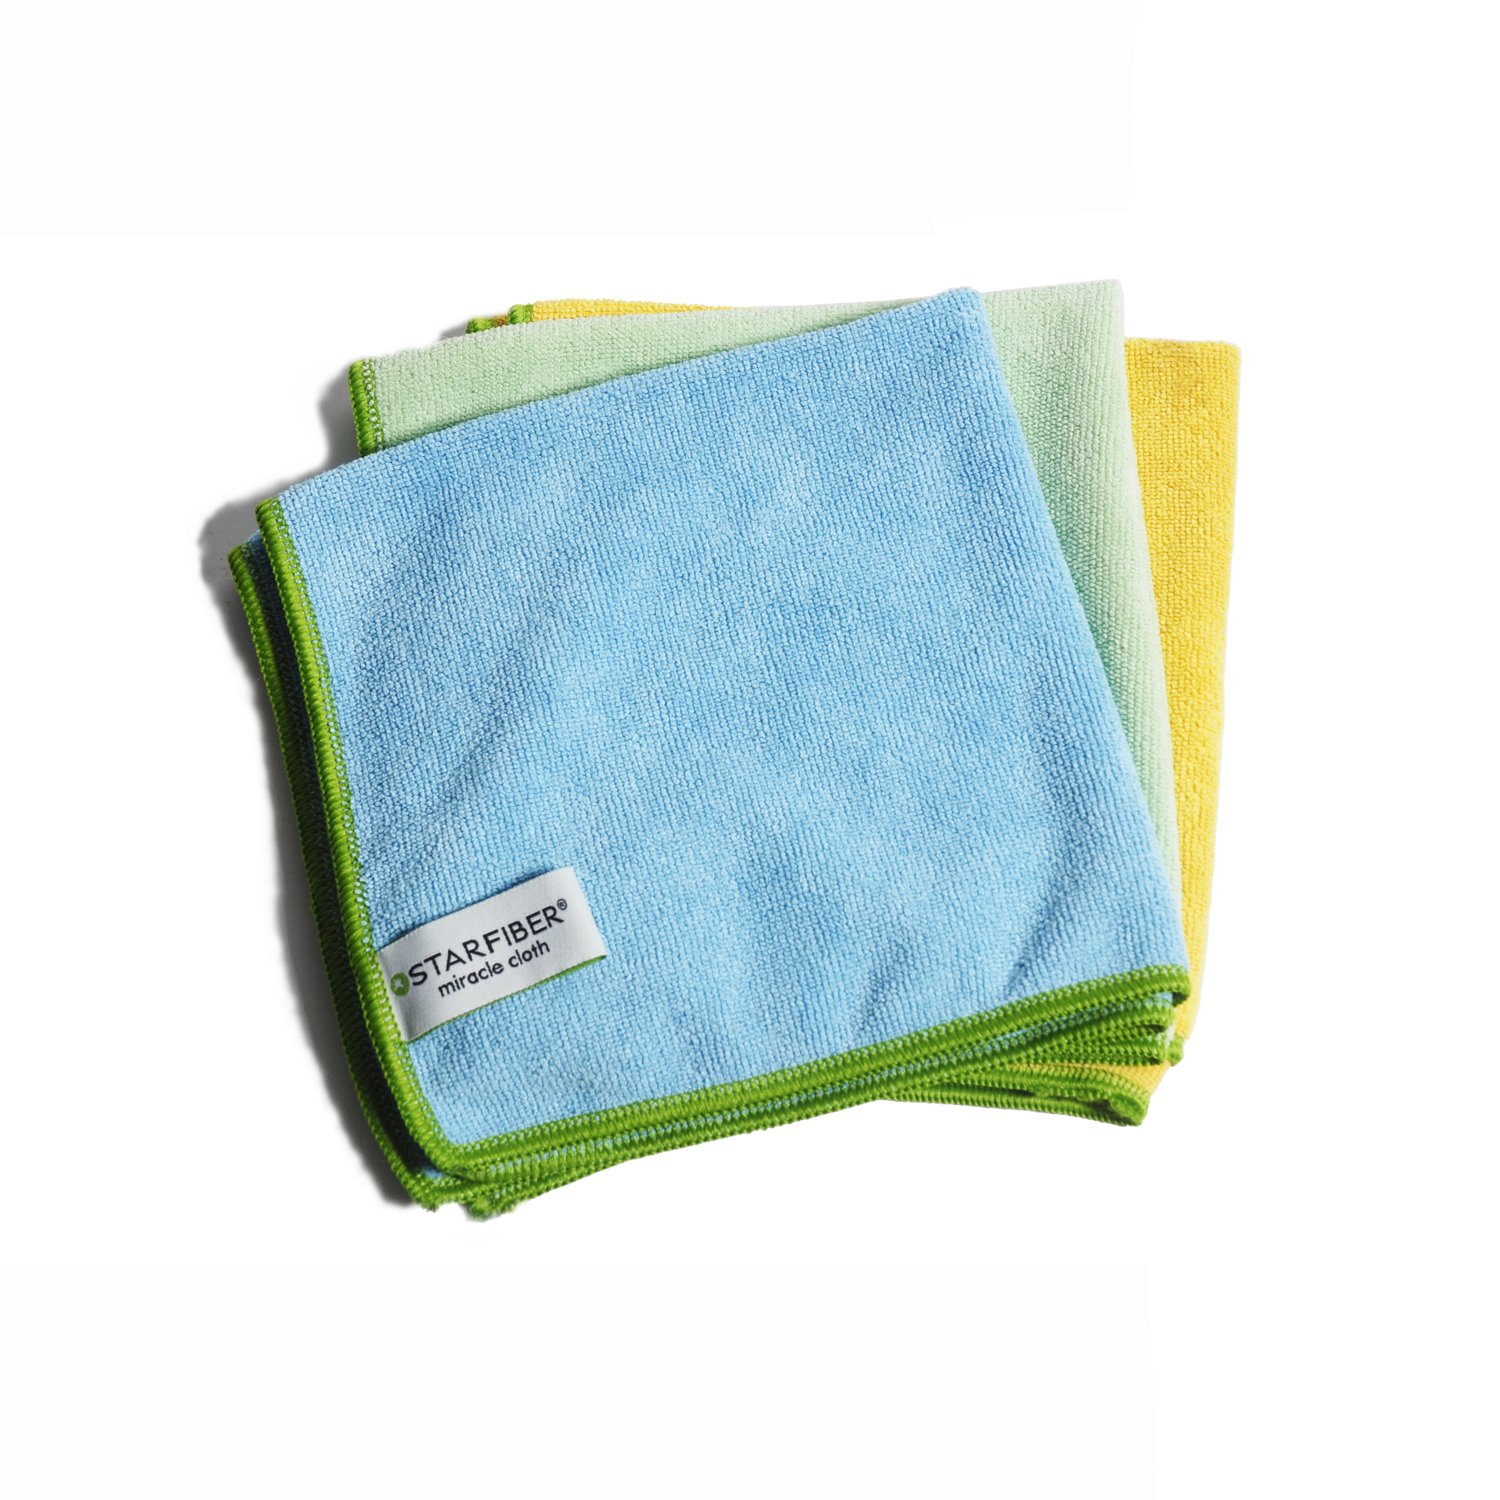 Amazon.com: Starfiber Microfiber Kitchen Scrubbies, 4-Pack: Health ...